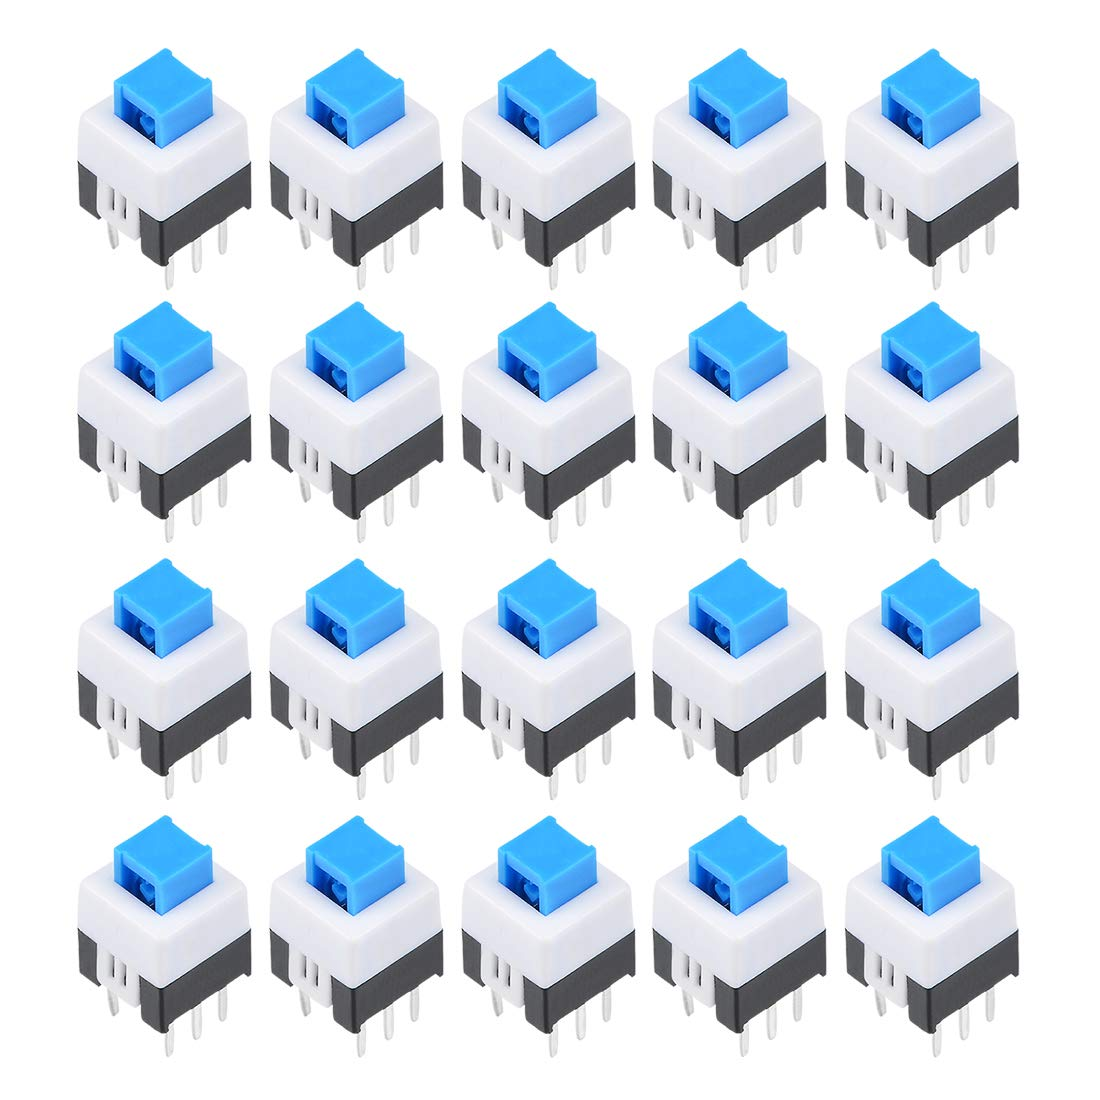 uxcell 20 Pcs 6 Pin PCB Light Touch Latching Push Button Tact Tactile  Switch 7 x 7 x 9mm